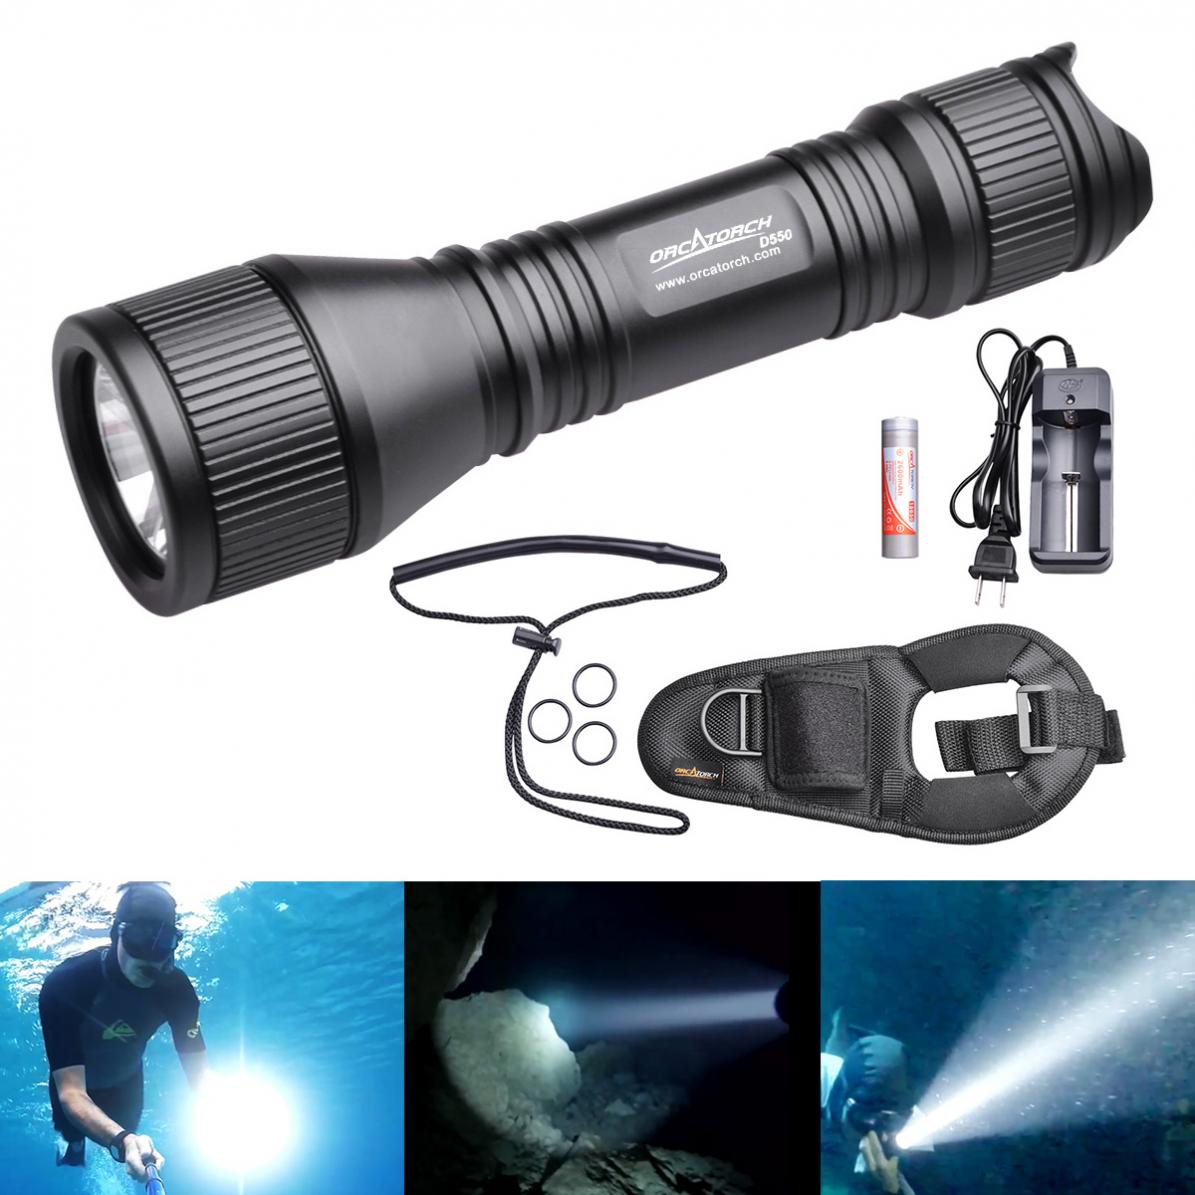 ORCATORCH New D550 Waterproof Diving Flashlight 970 Lumens XM-L2 U4 LED with O-Ring and Hand Rope for Professional Diving